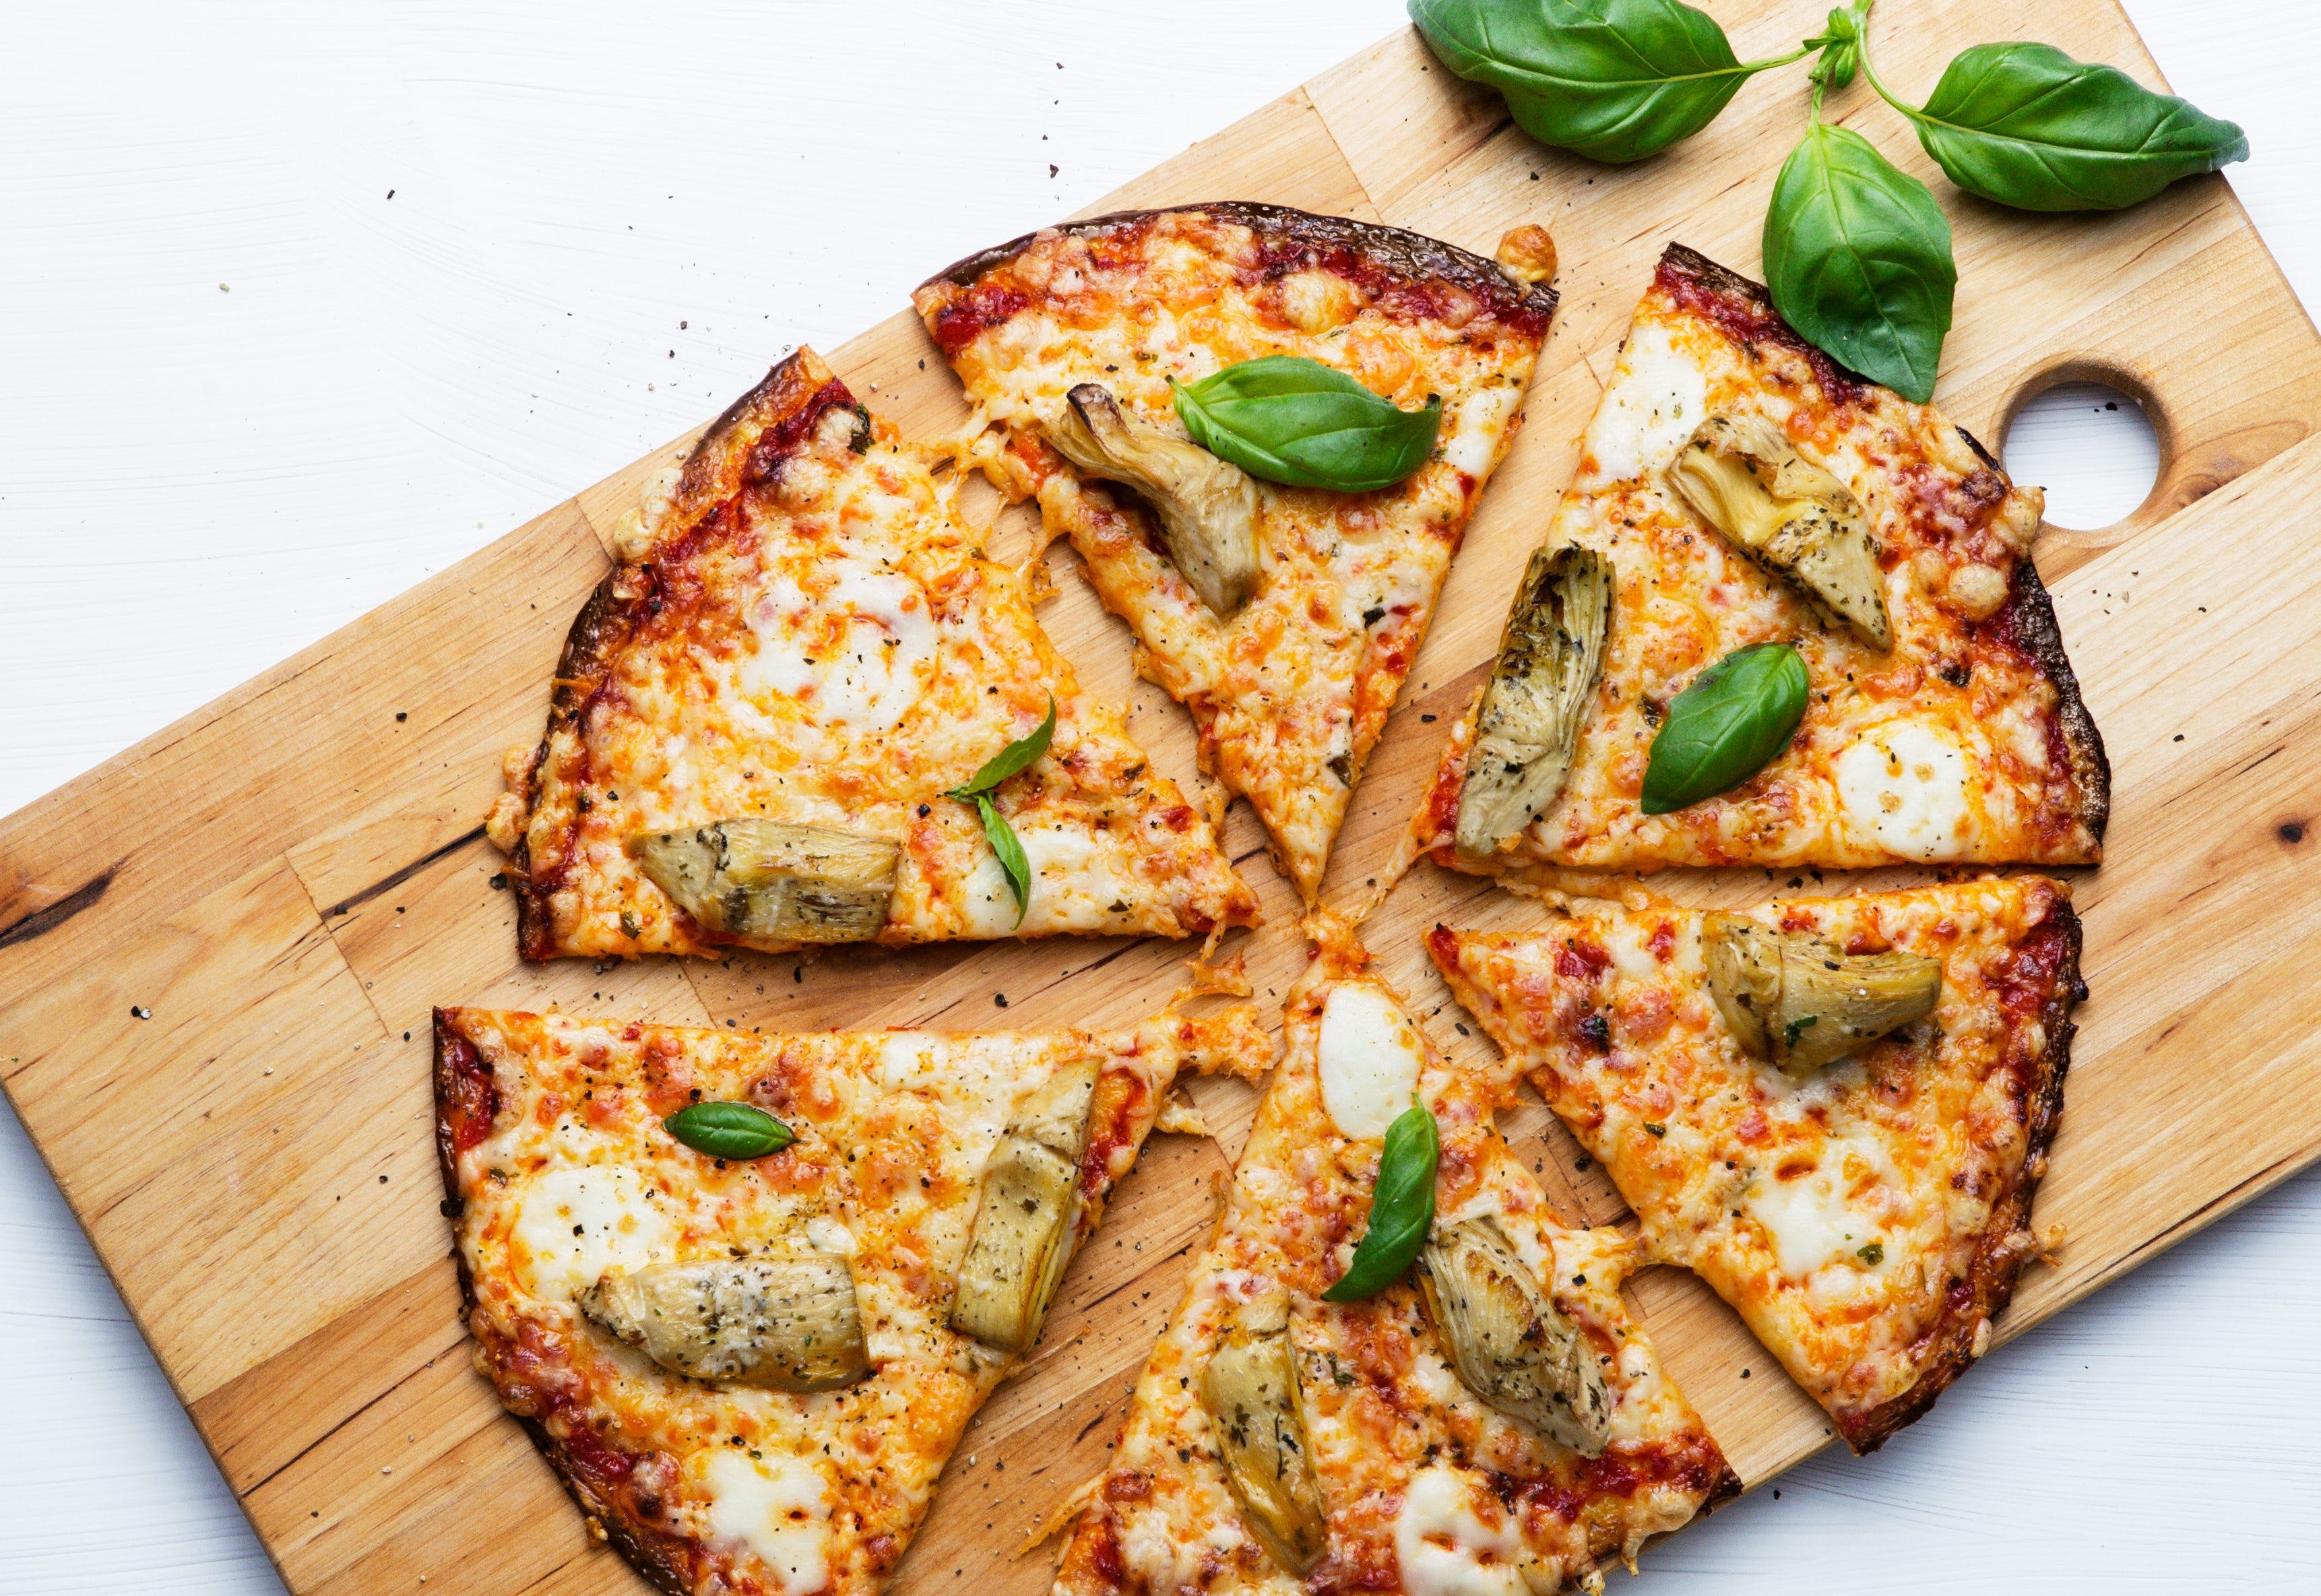 Vegetarian Low-Carb Cauliflower Pizza with Artichokes